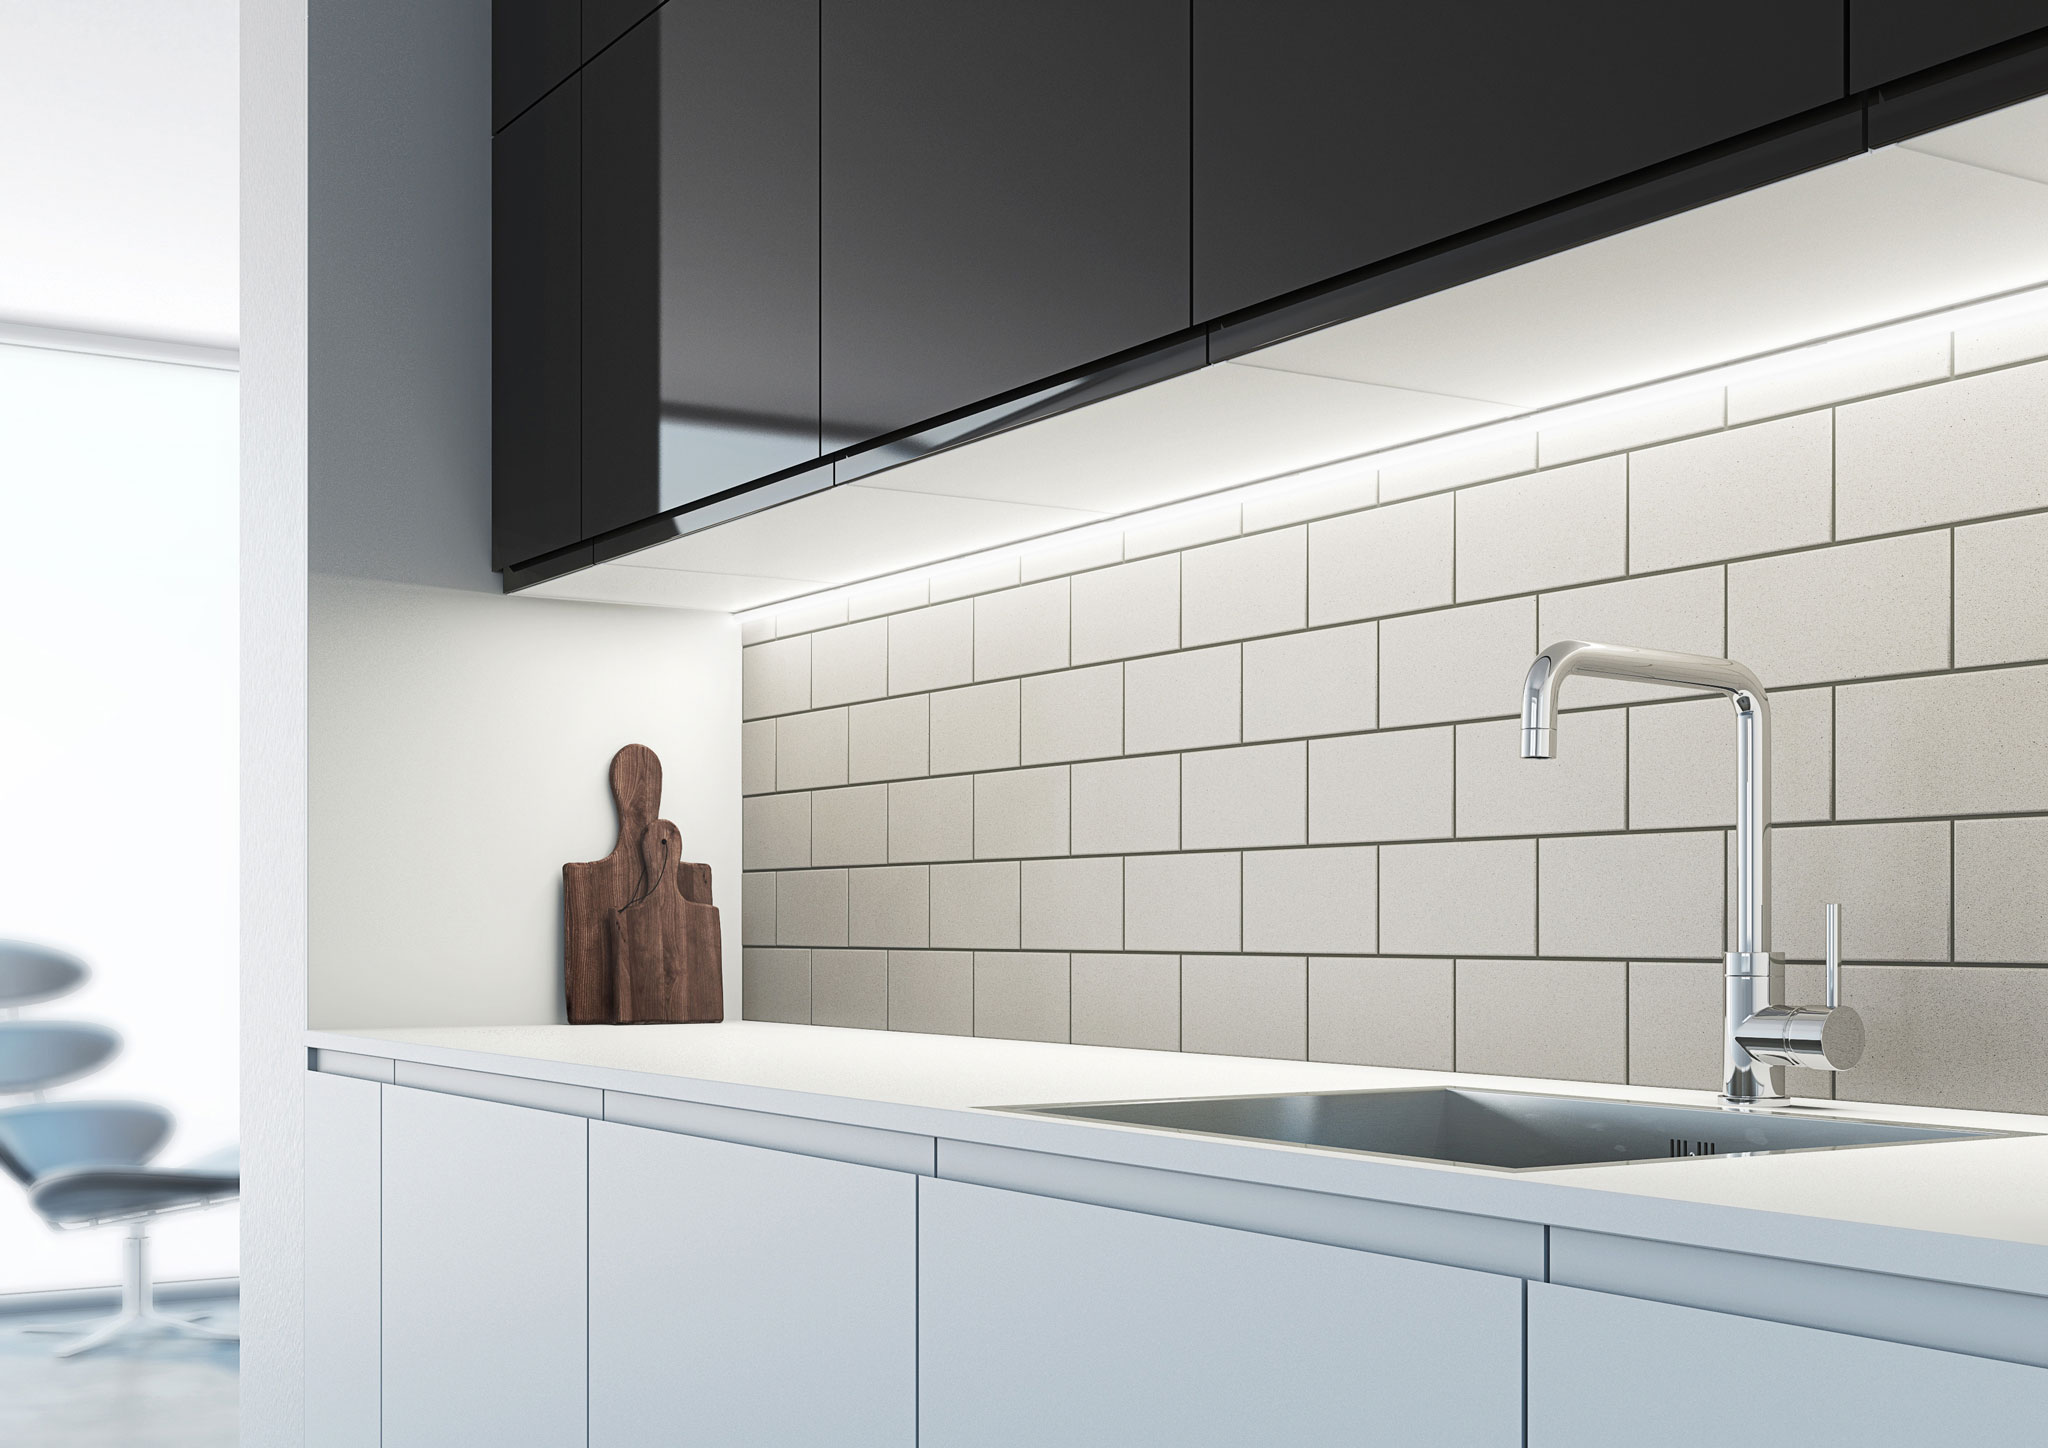 Sensio Cool White Arrow Slim Profile SLS LED Strip Light mounted under cabinet.